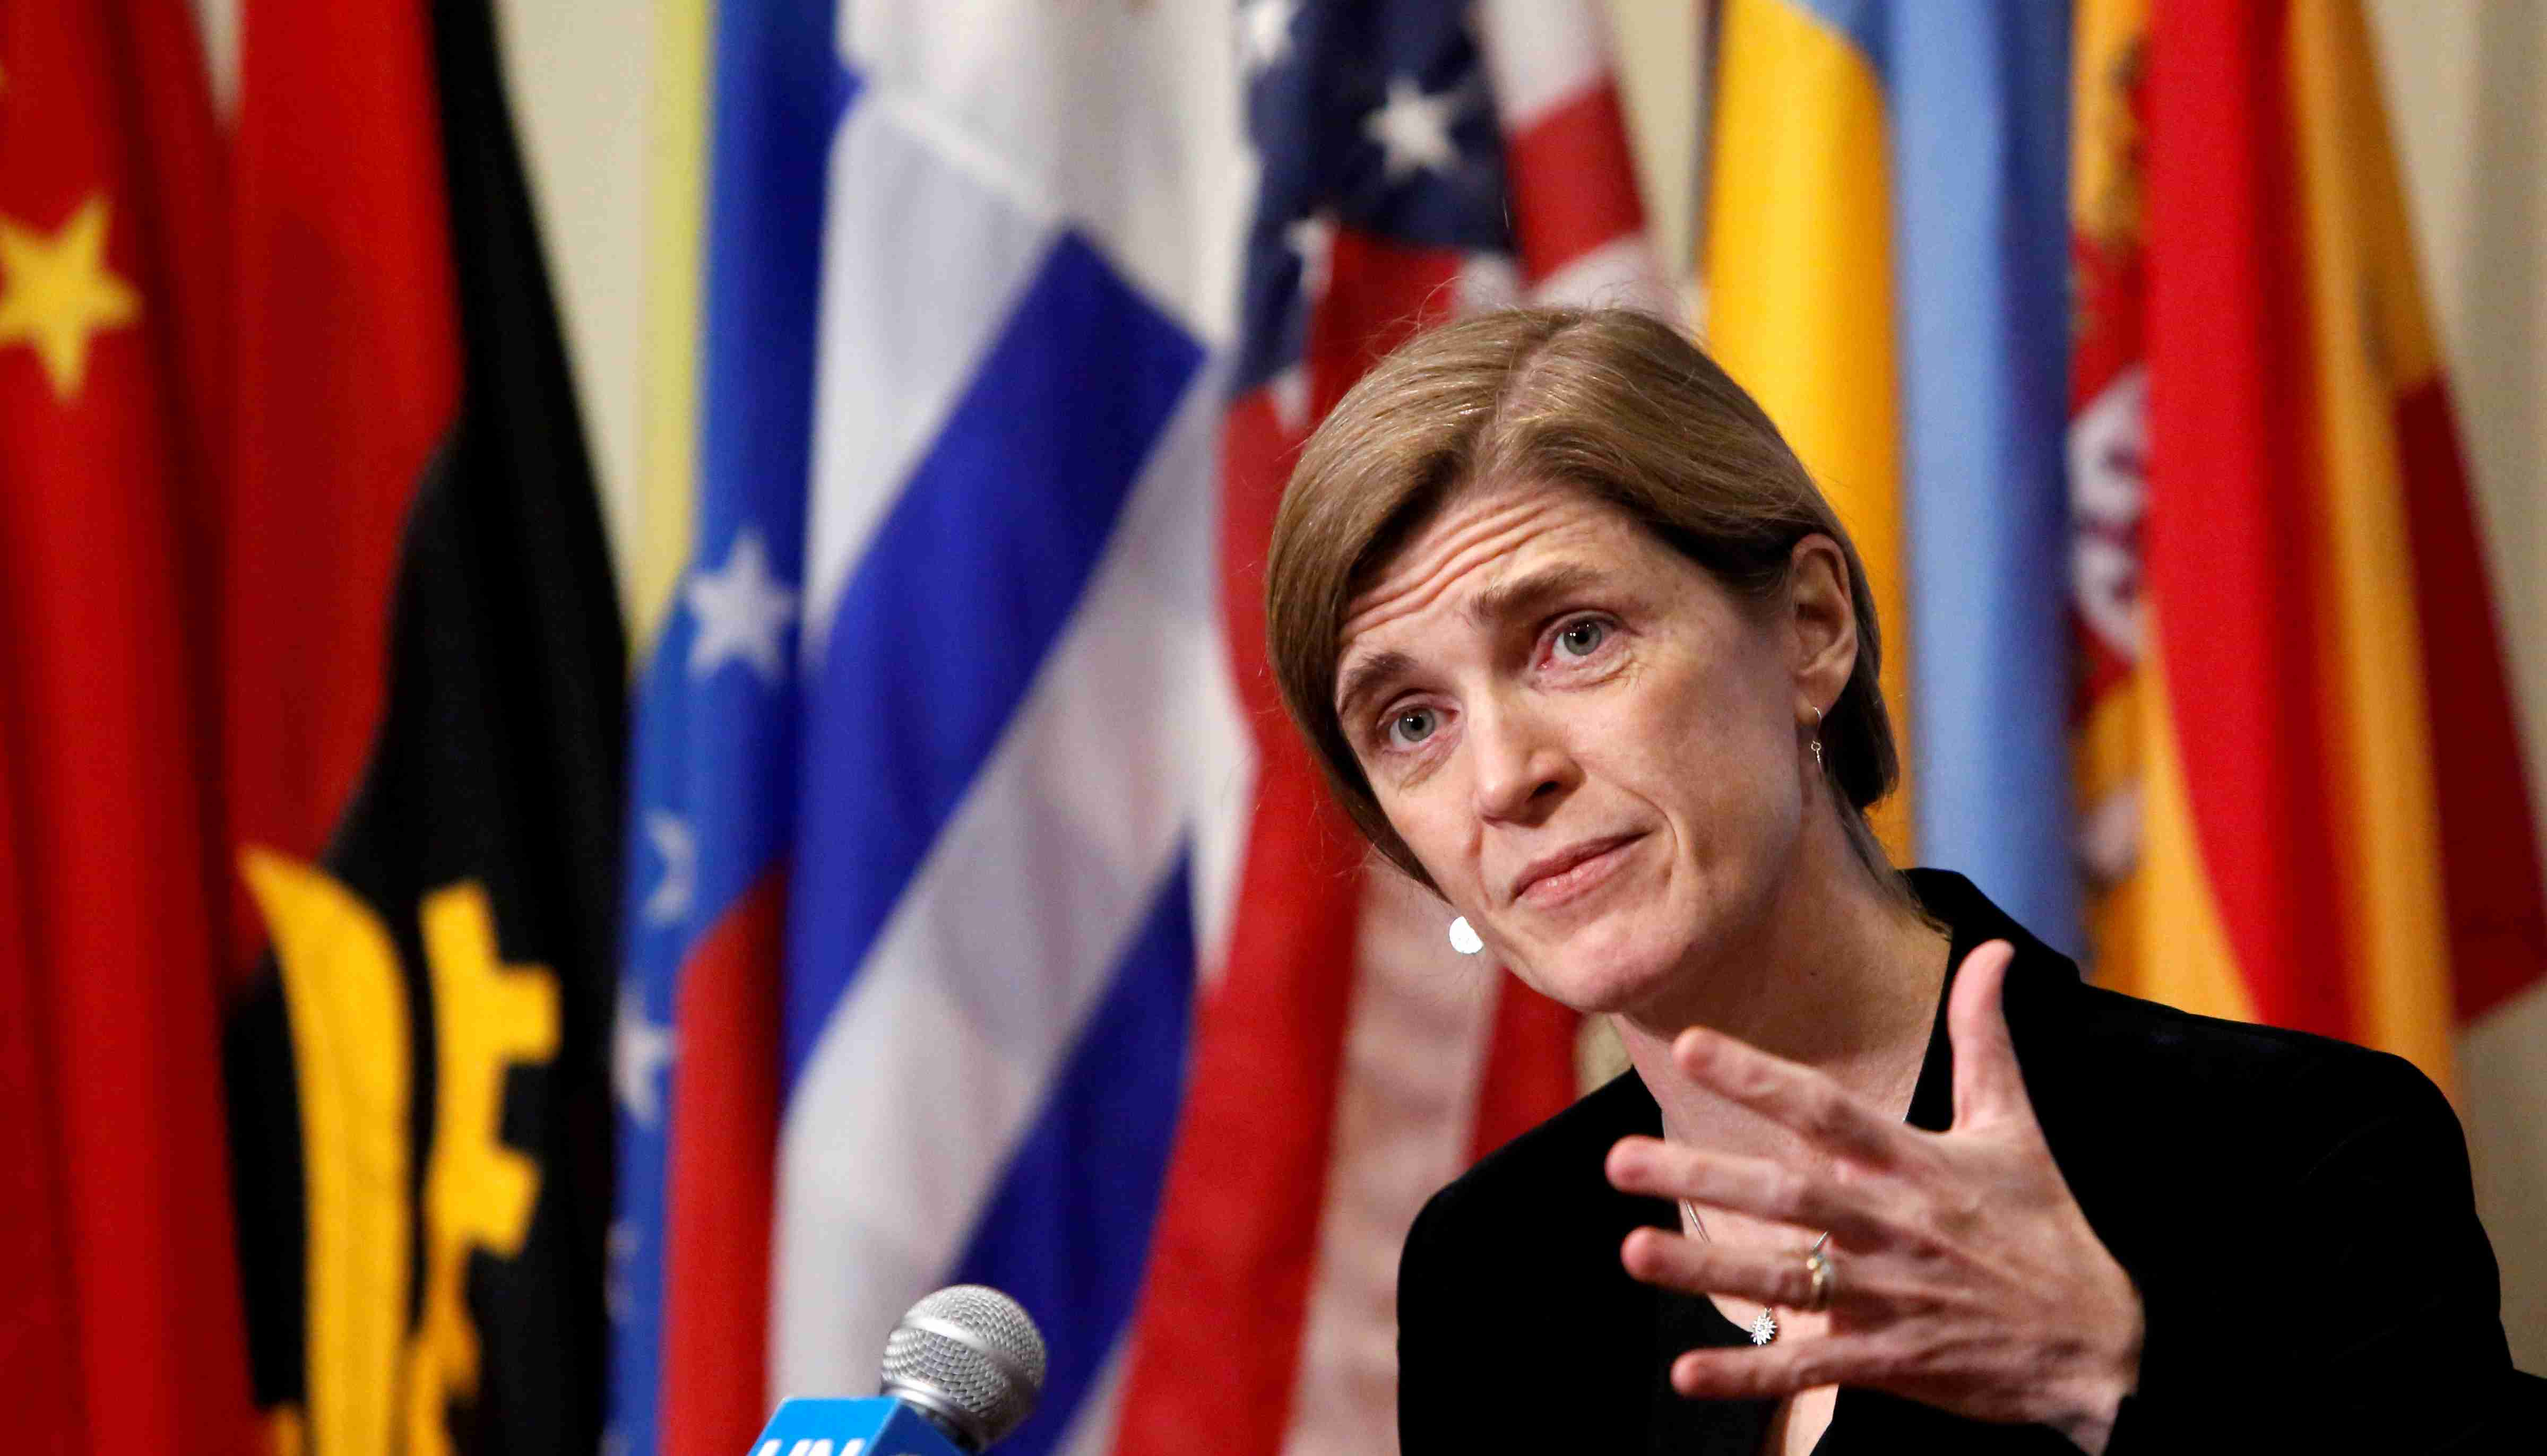 FILE PHOTO: Then-U.S. Ambassador to the United Nations Samantha Power addresses media at the United Nations in Manhattan, New York City, U.S., December 19, 2016. REUTERS/Andrew Kelly/File Photo